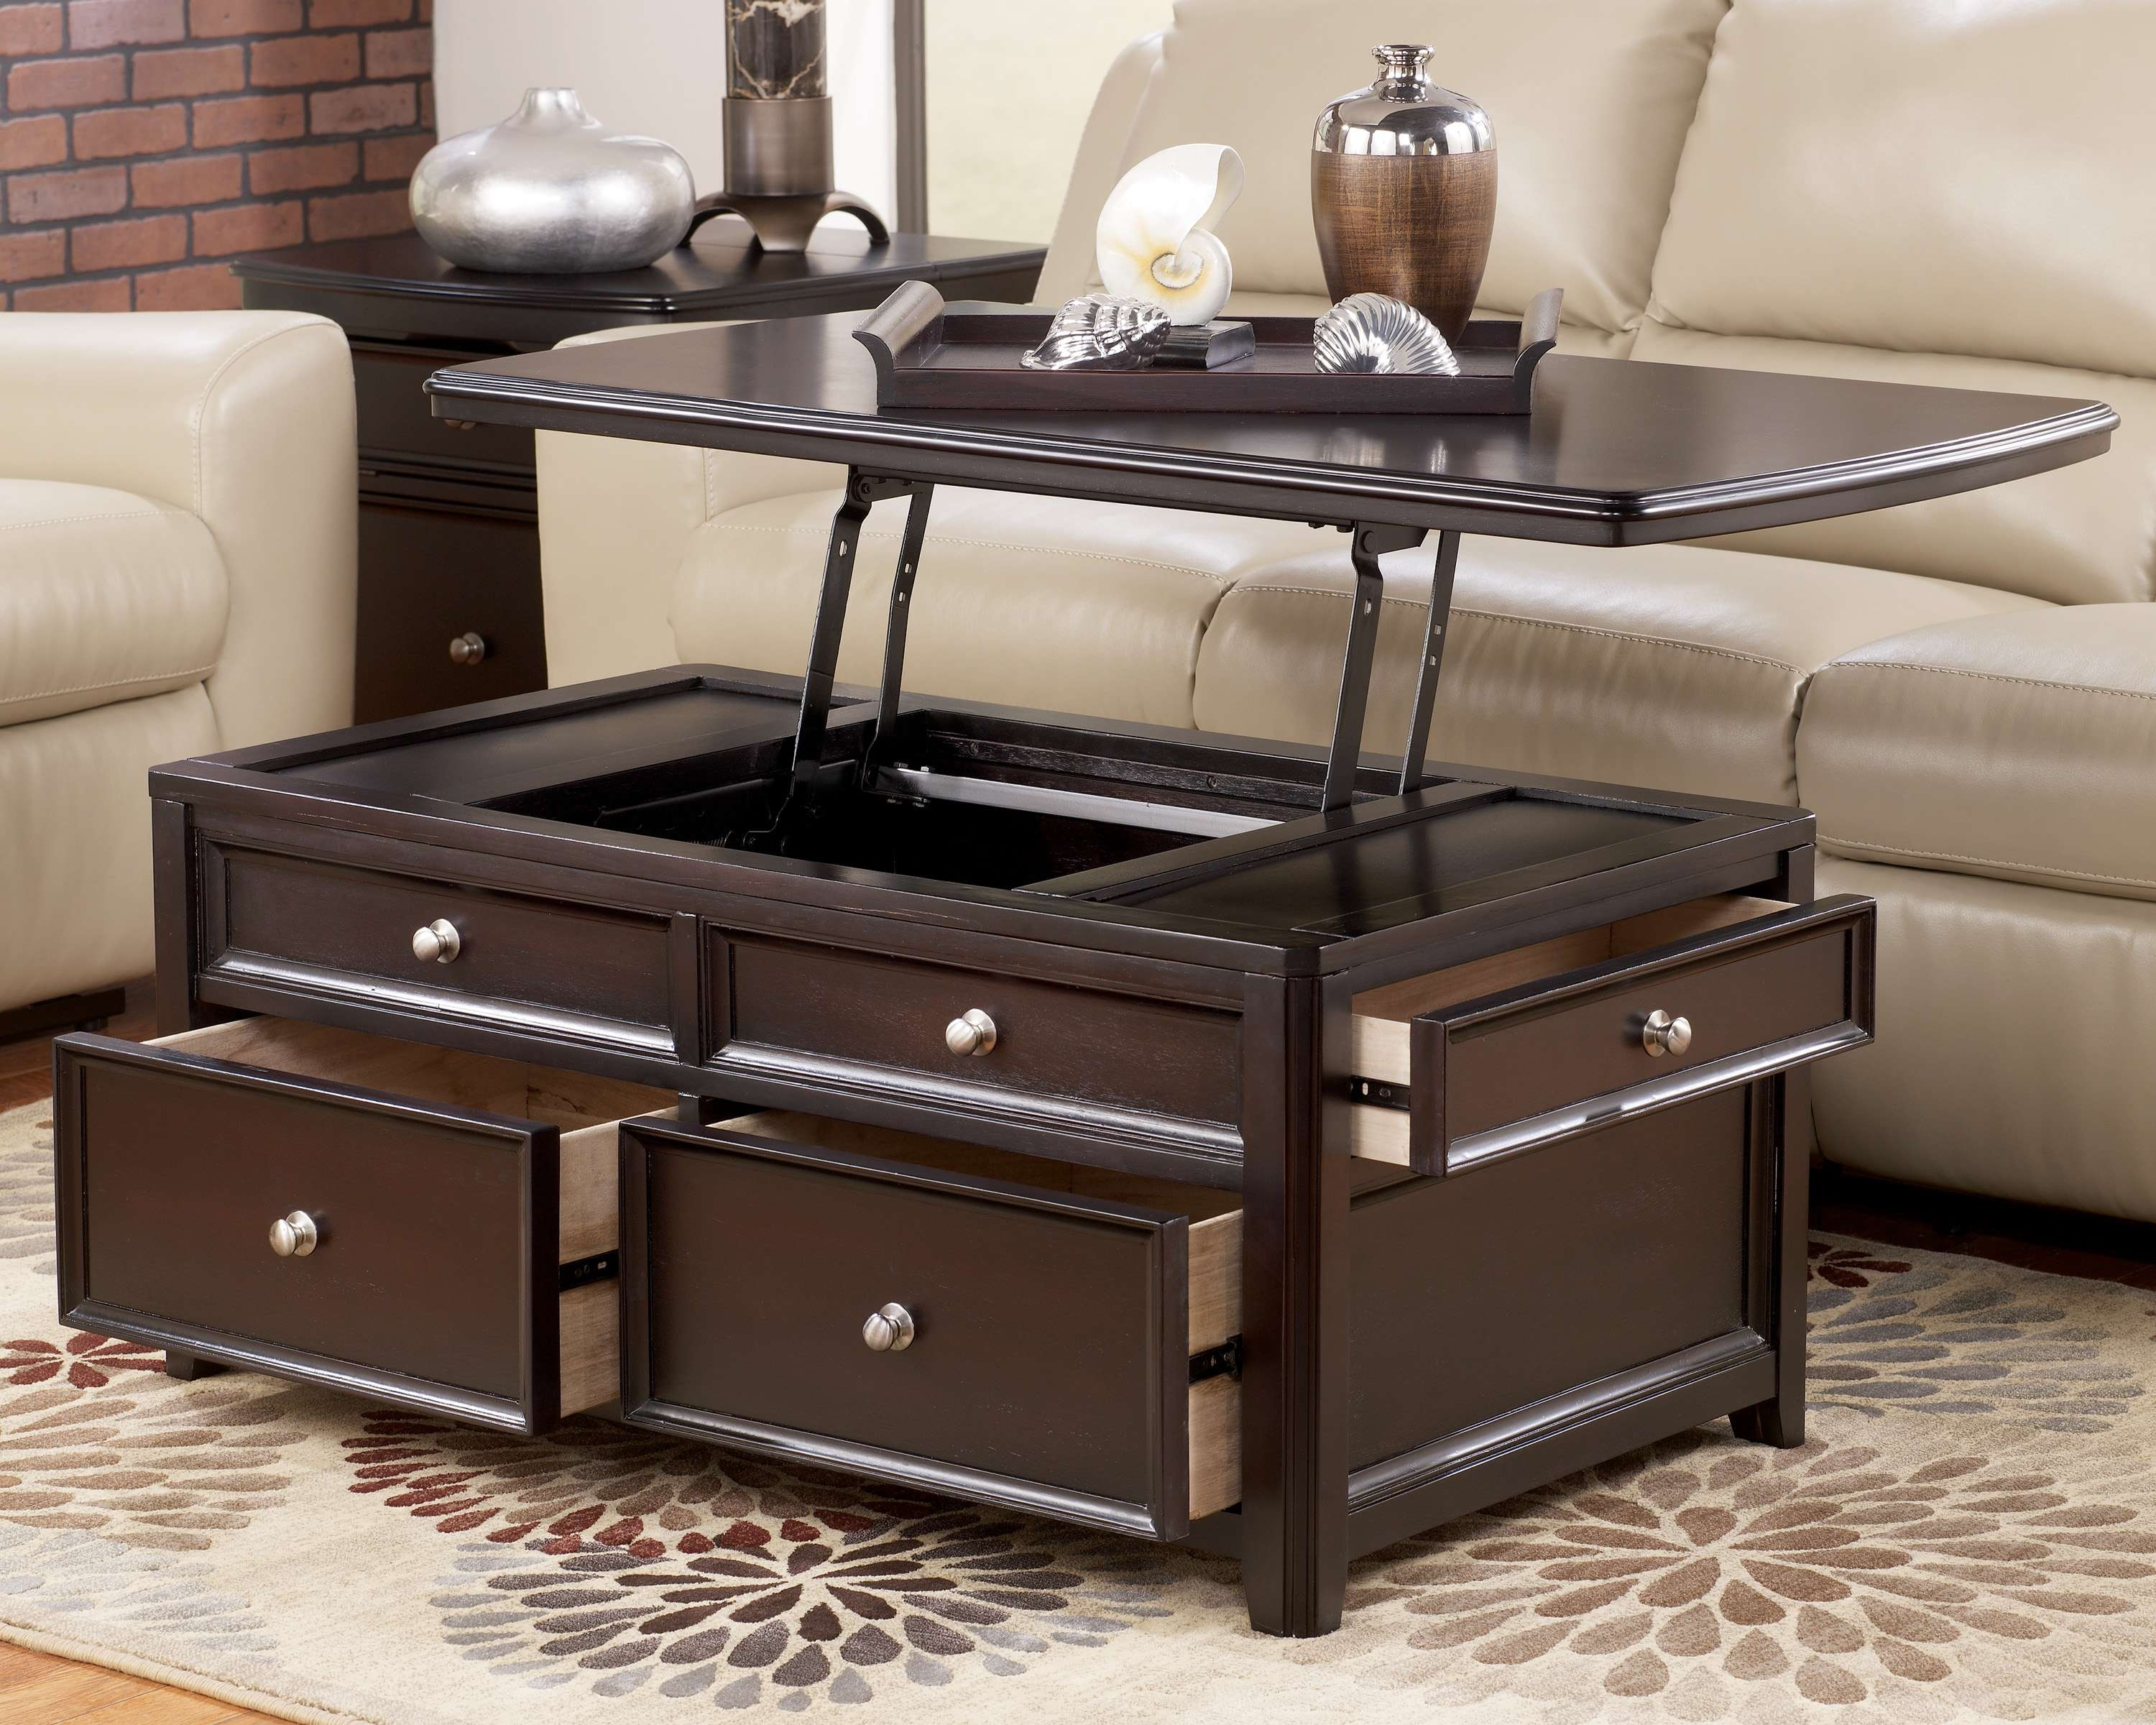 Coffee Table : Target Side Table Side Table Walmart Best Lift Top With Famous Coffee Tables With Lift Top Storage (View 4 of 20)